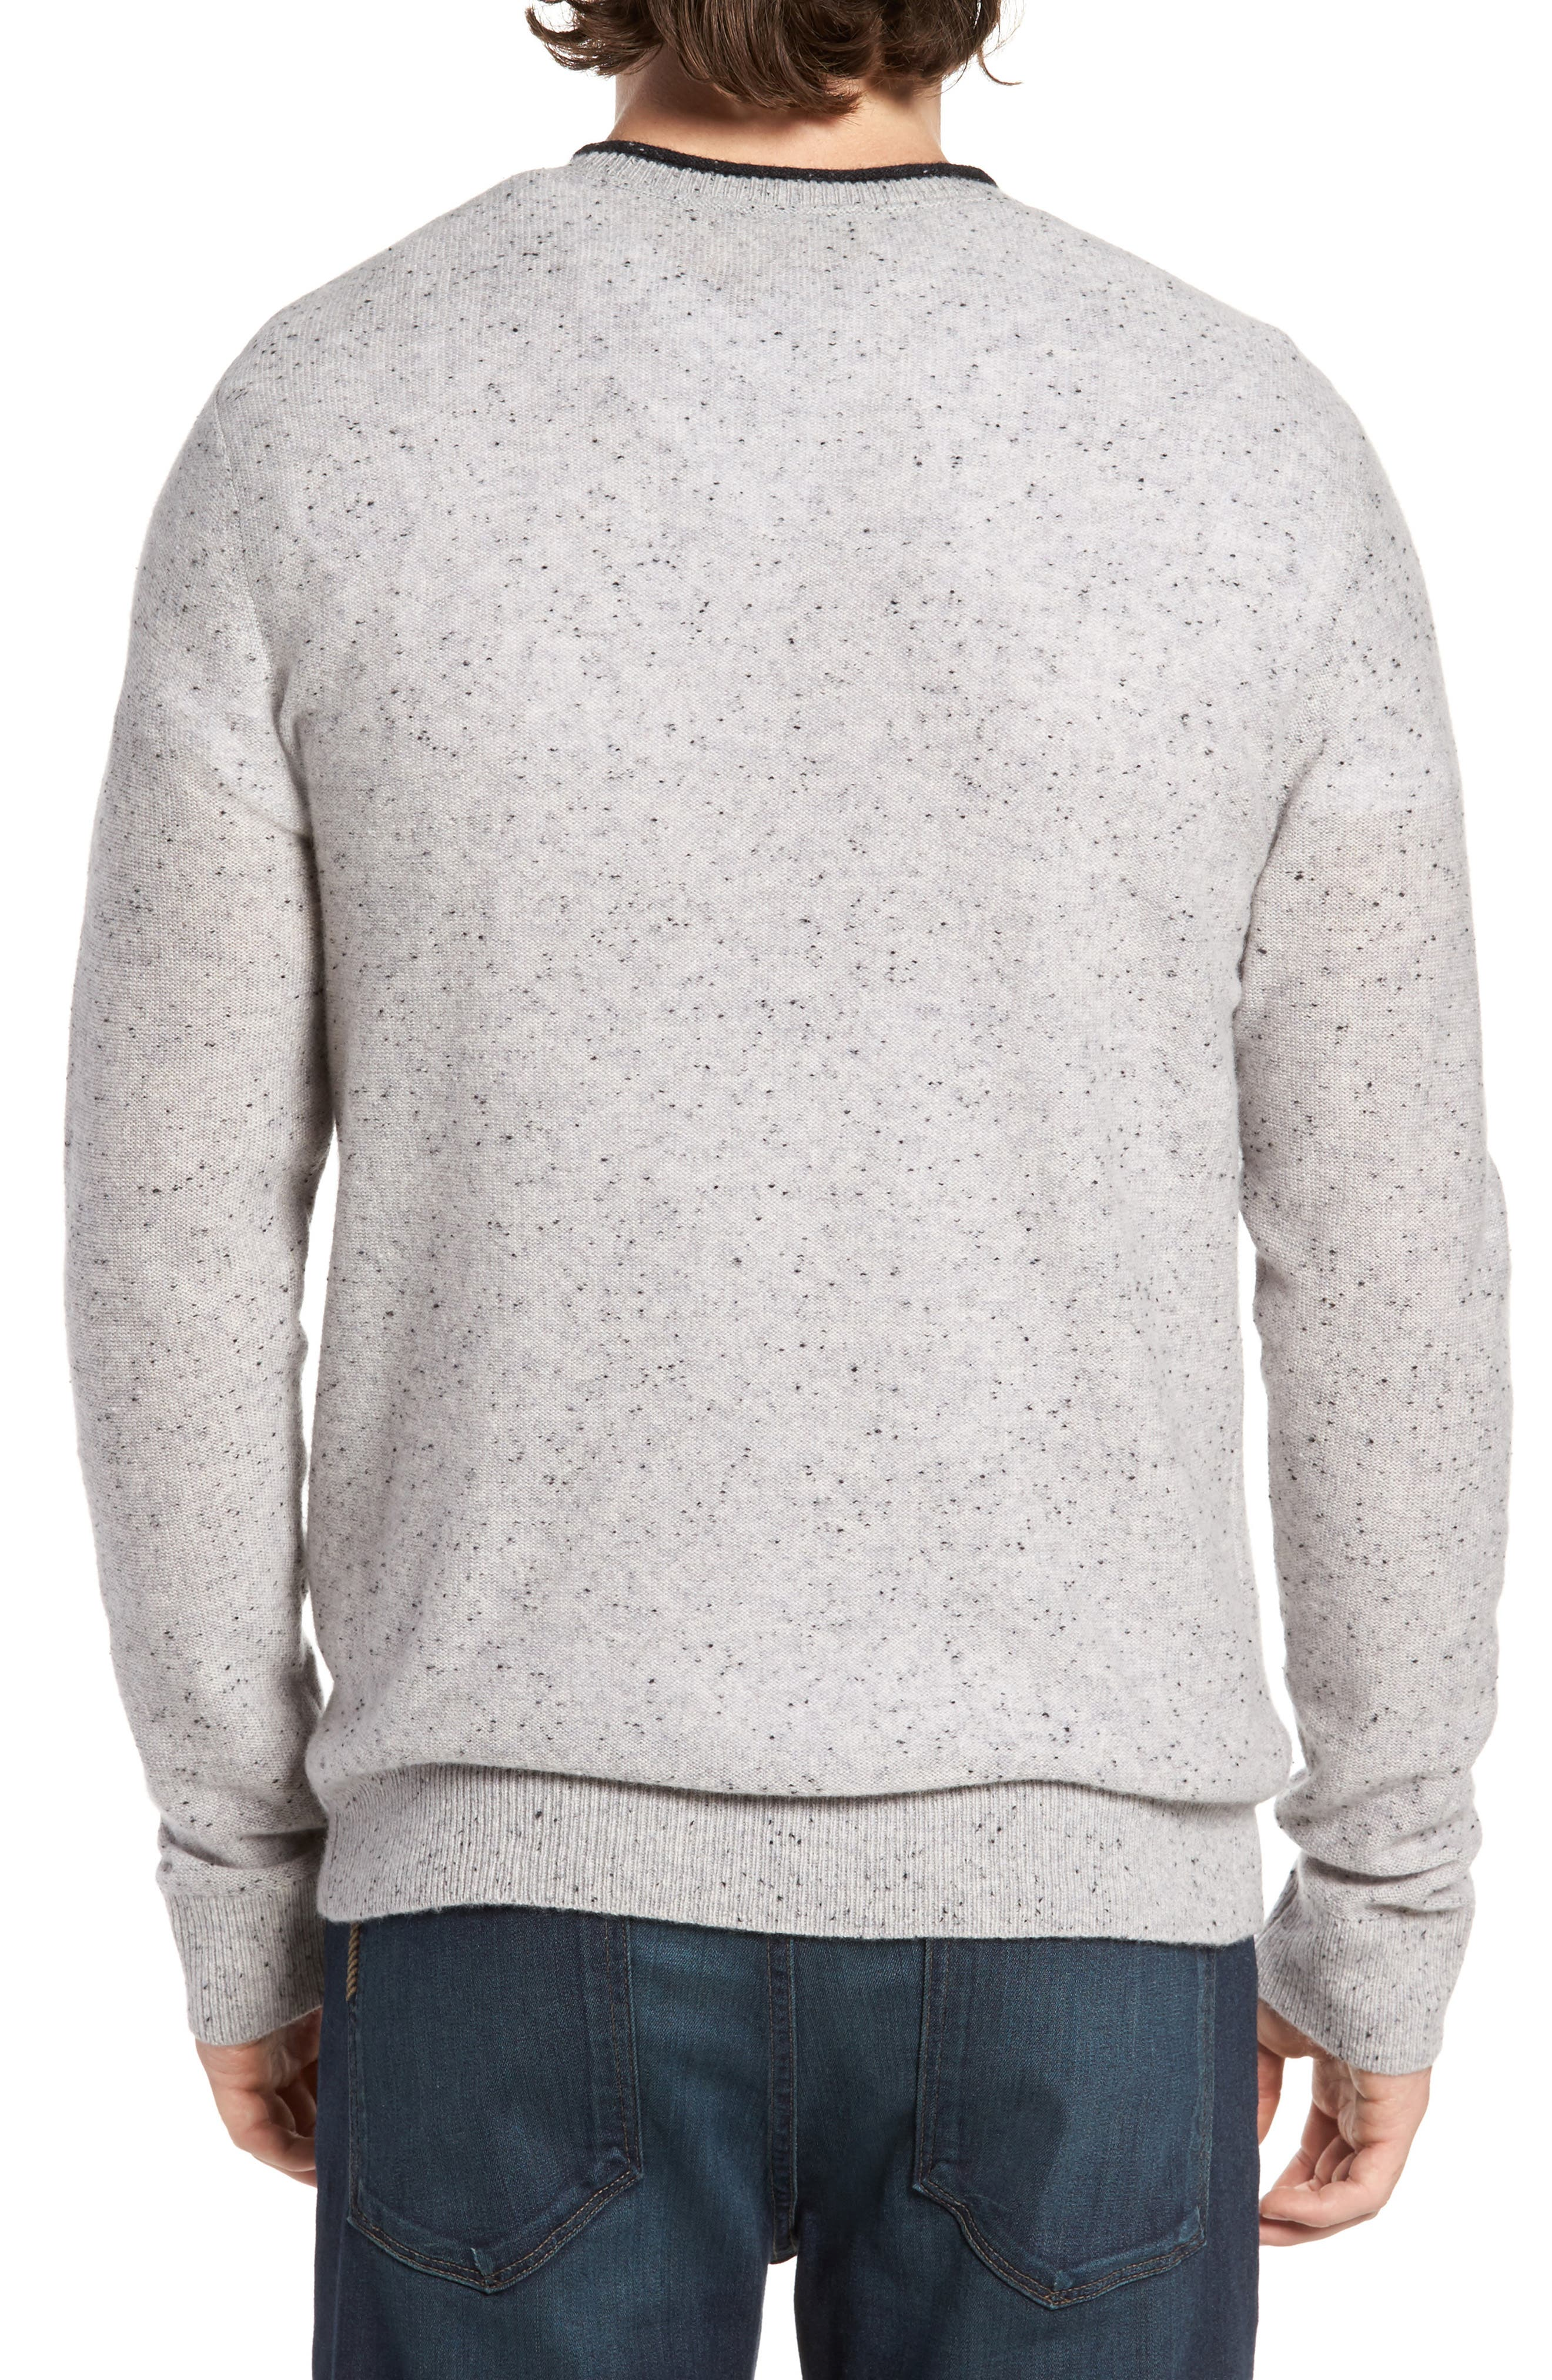 Nep Wool & Cashmere Sweater,                             Alternate thumbnail 2, color,                             020